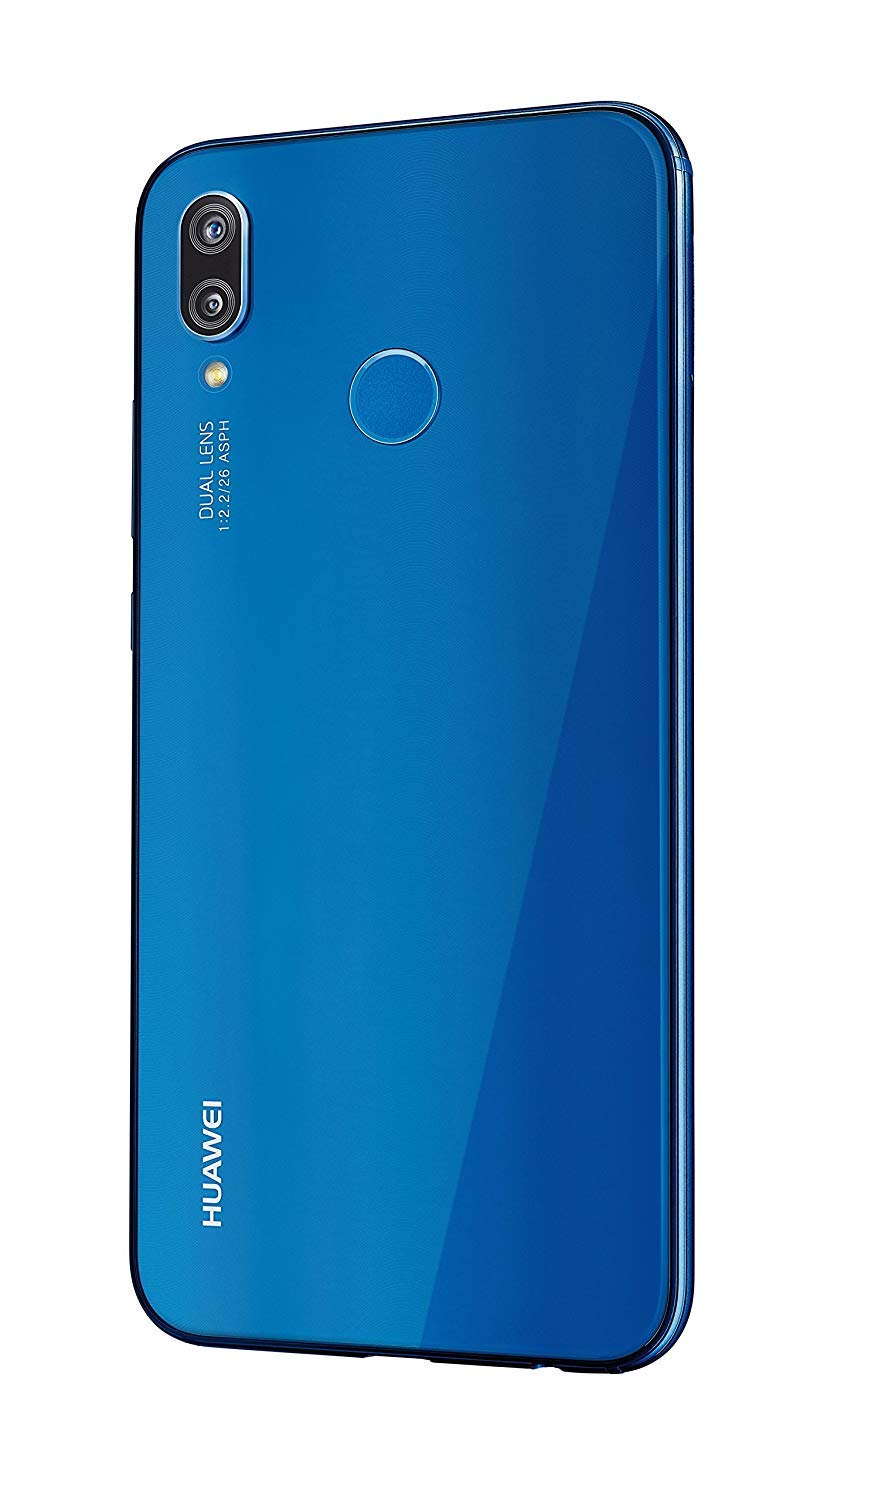 "Huawei P20 Lite 64GB Klein Blue, Dual Sim, 5.84"" inch, 4GB Ram, (GSM Only, No CDMA) Unlocked International Model, No Warranty"